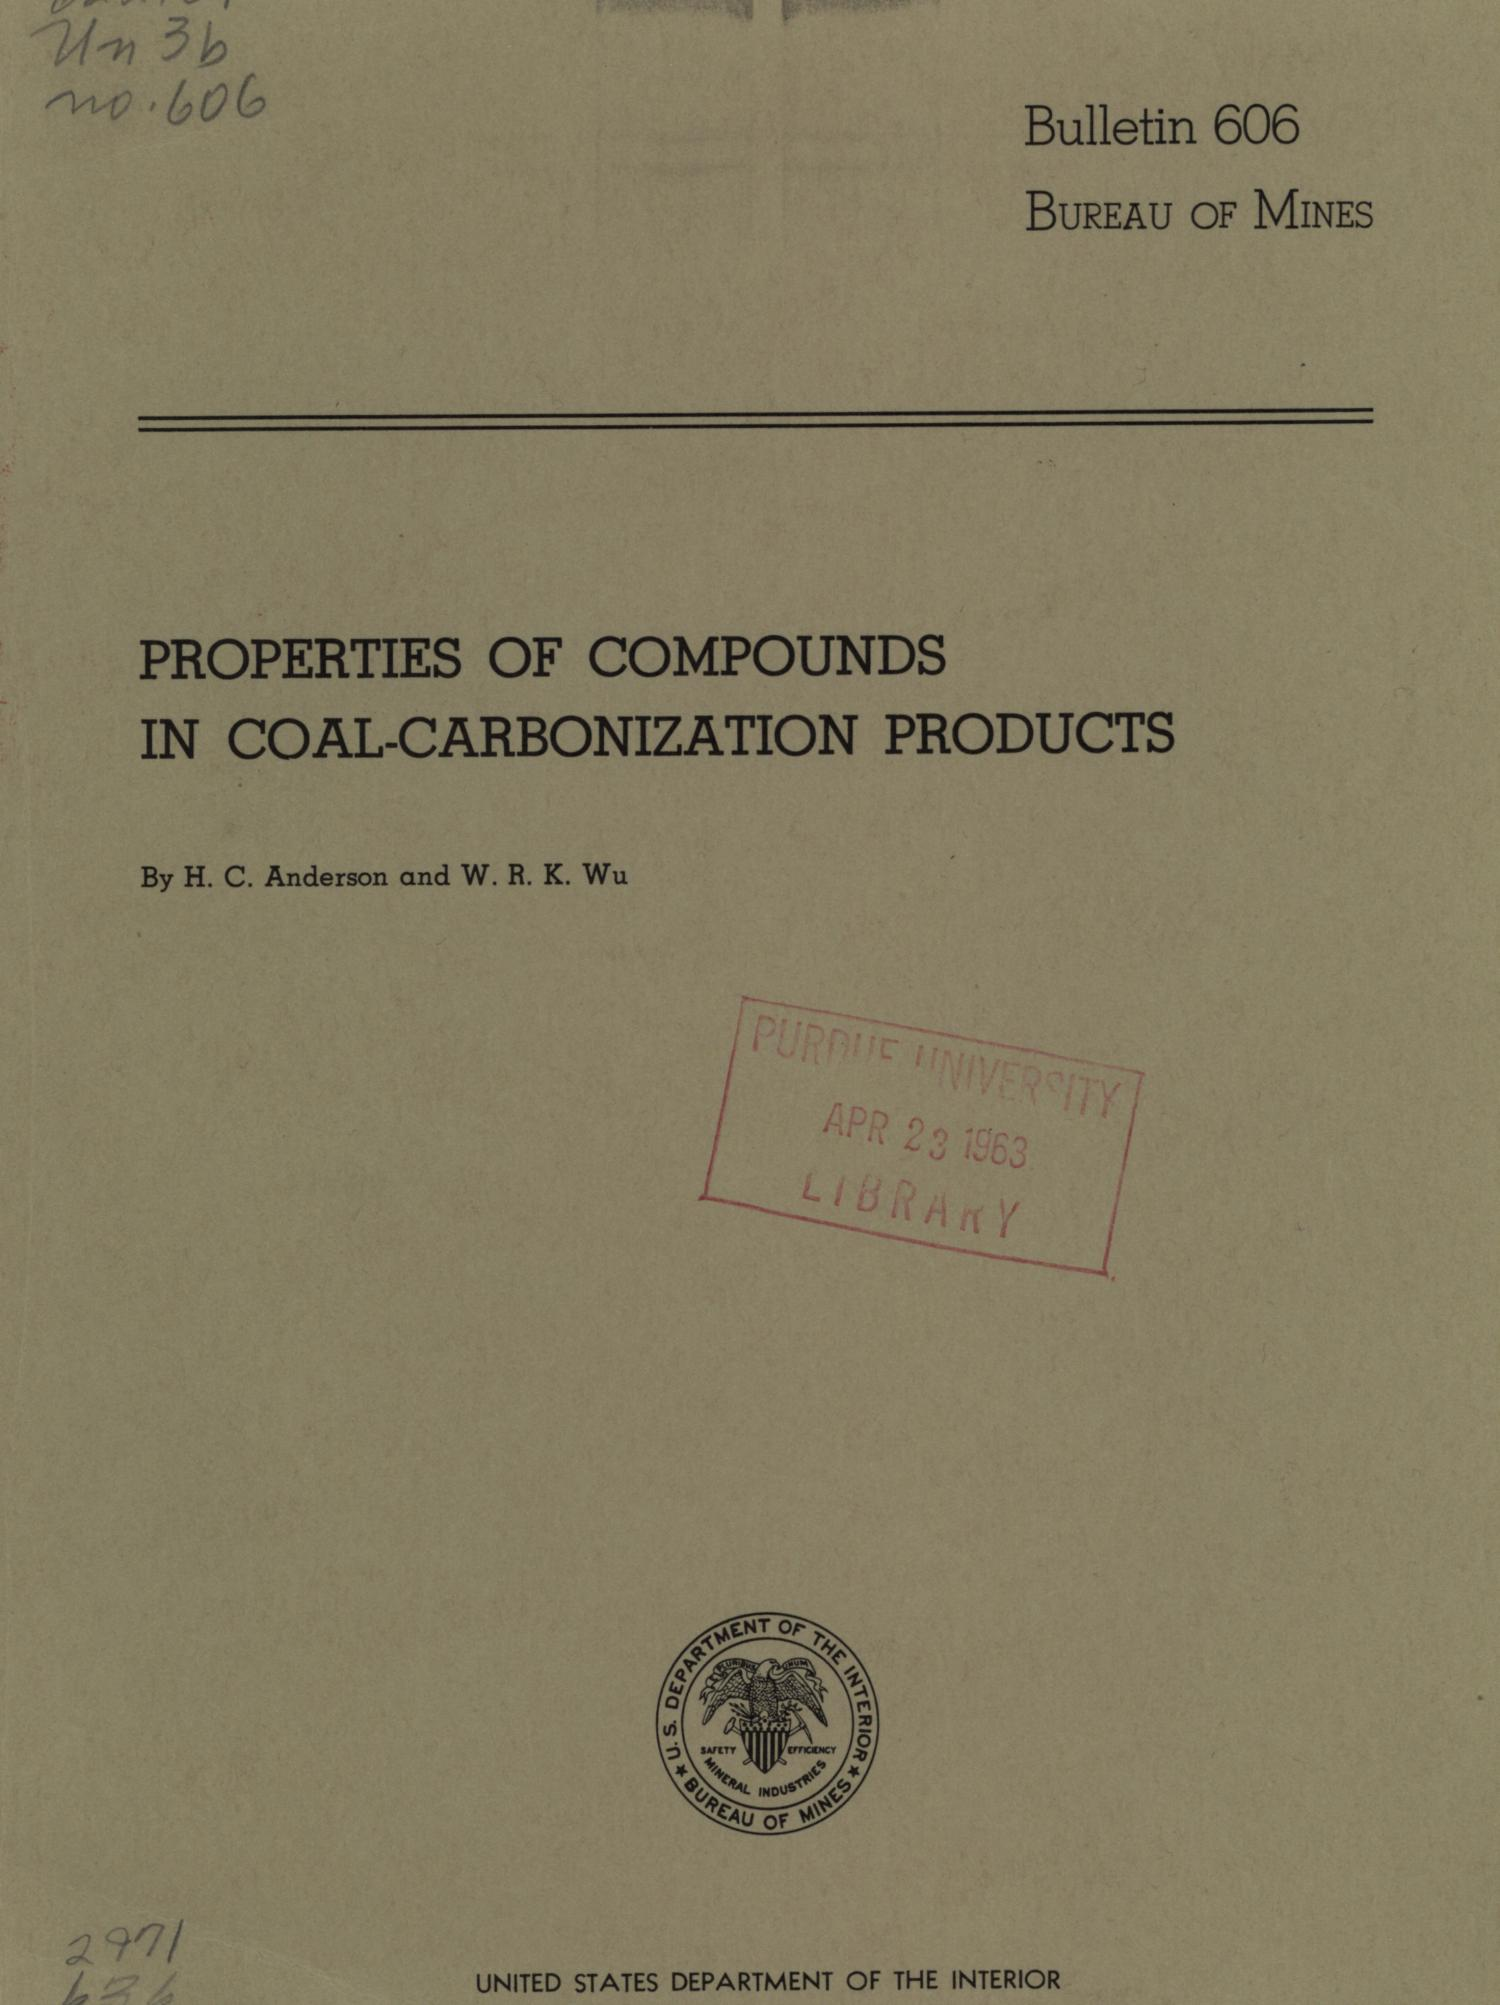 Properties of Compounds in Coal-Carbonization Products                                                                                                      Front Cover